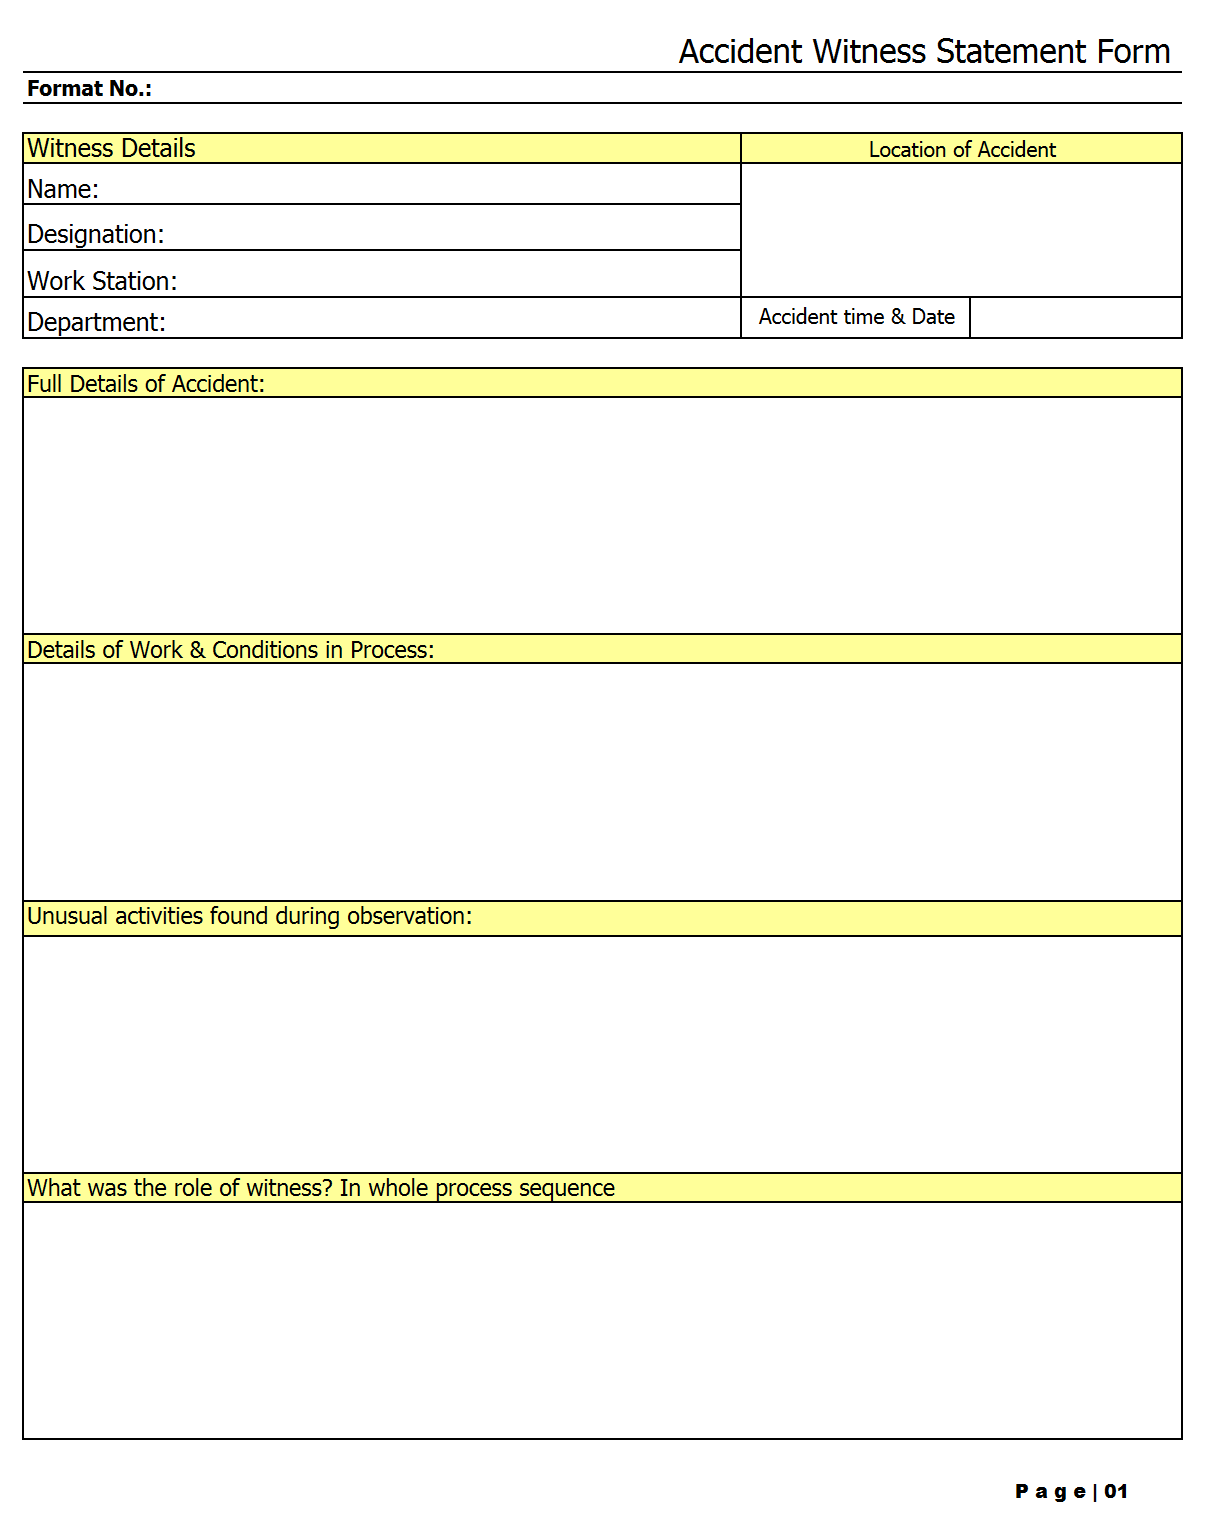 Accident witness statement form template format excel pdf sample accident witness statement form page 01 altavistaventures Choice Image